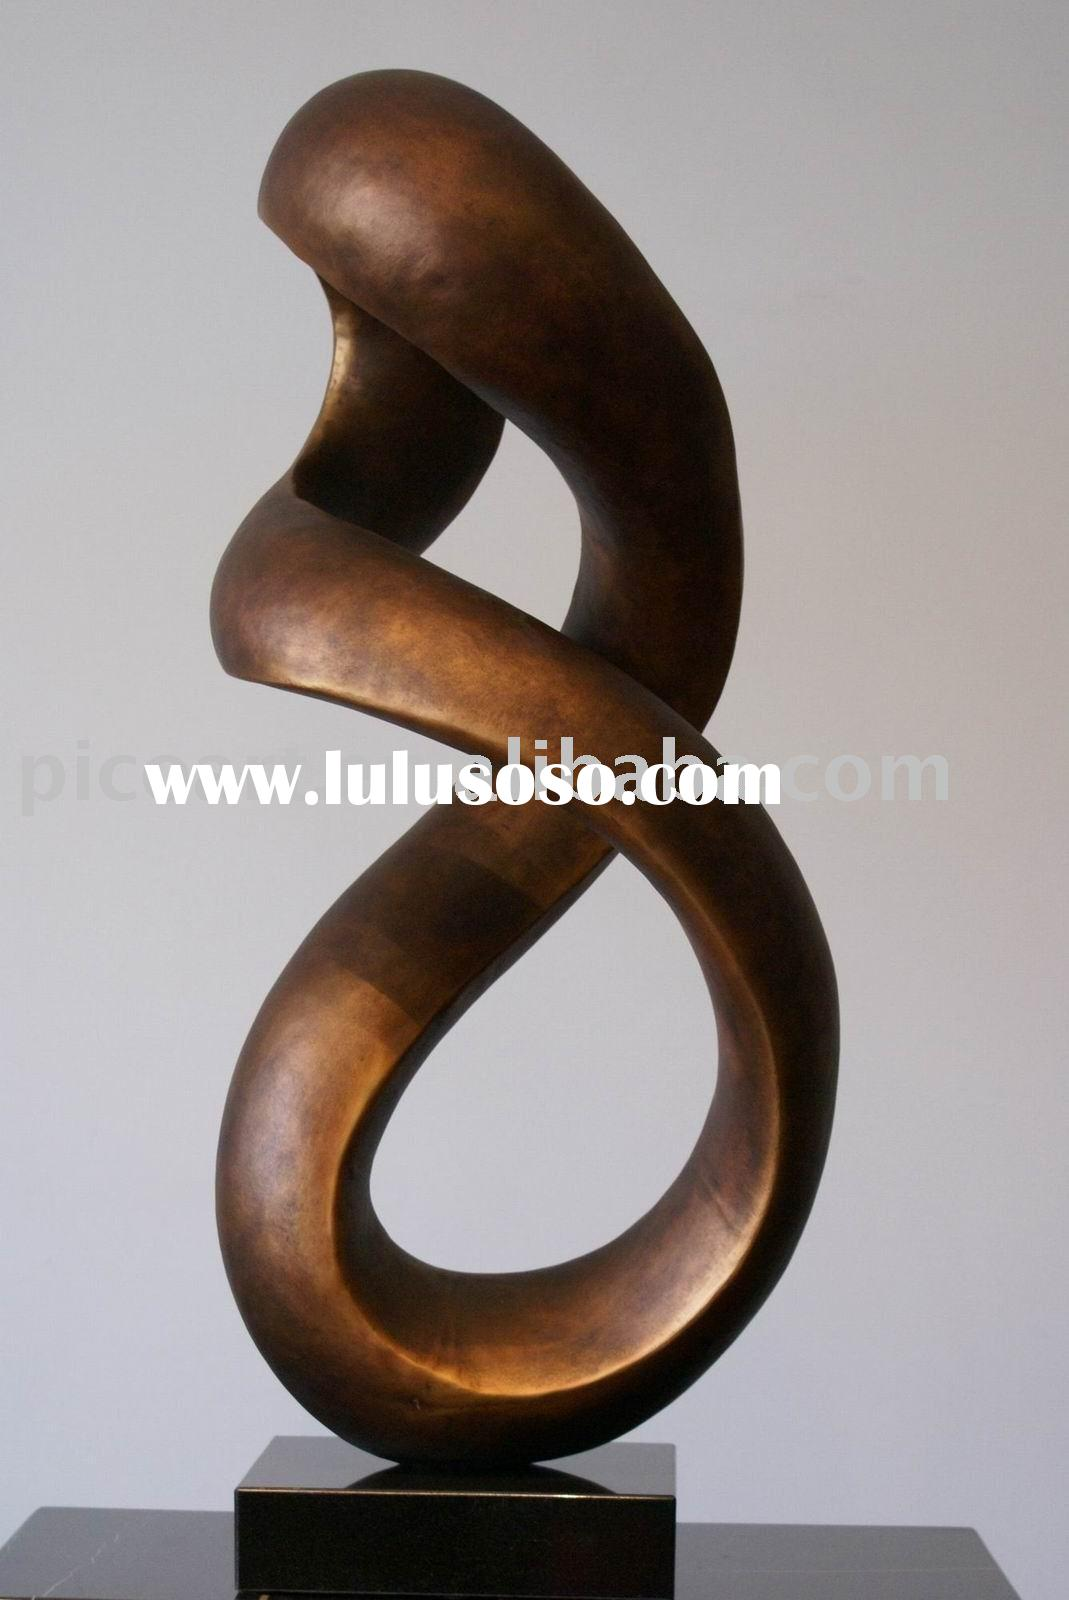 abstract design carving and sculpture